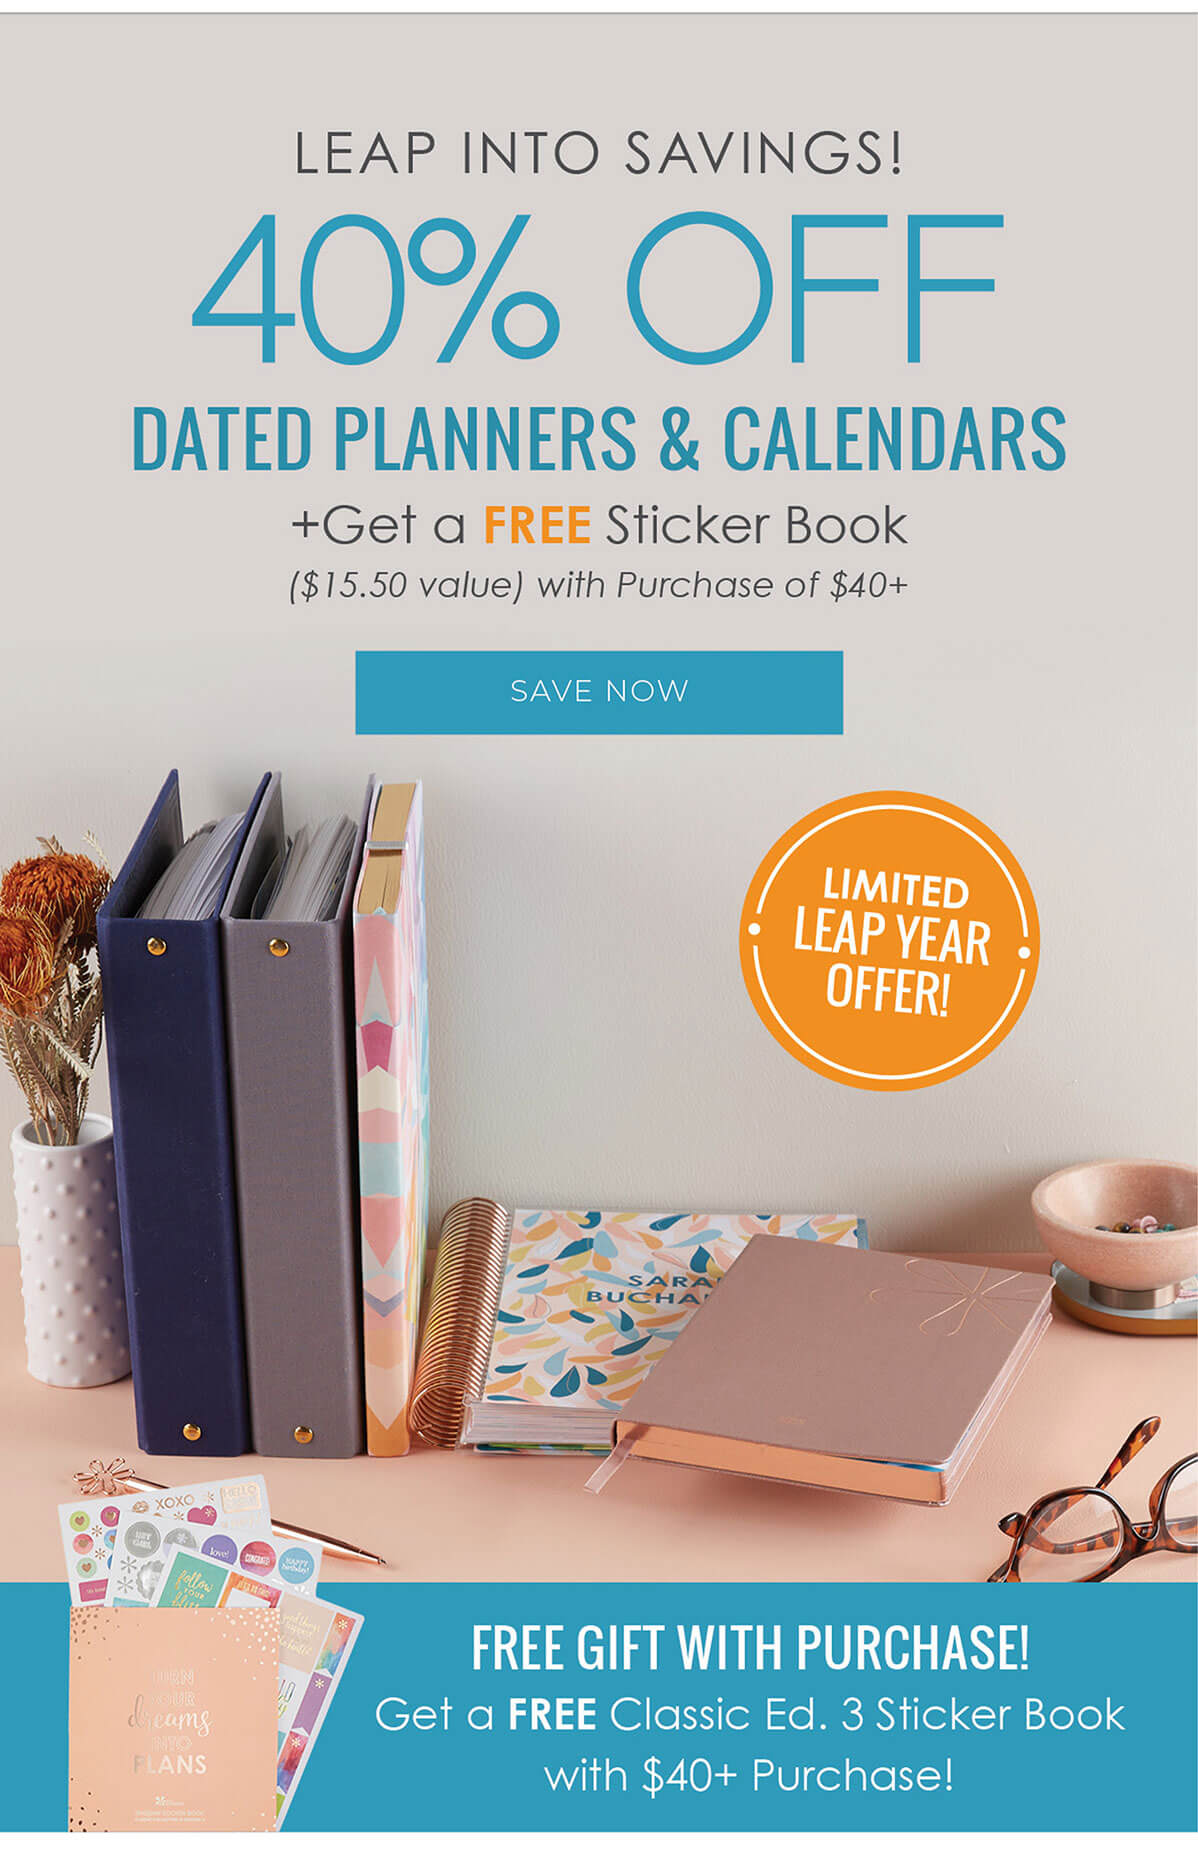 Erin Condren Sale – Save 40% off 2020 Dated Planners + Free Gift!